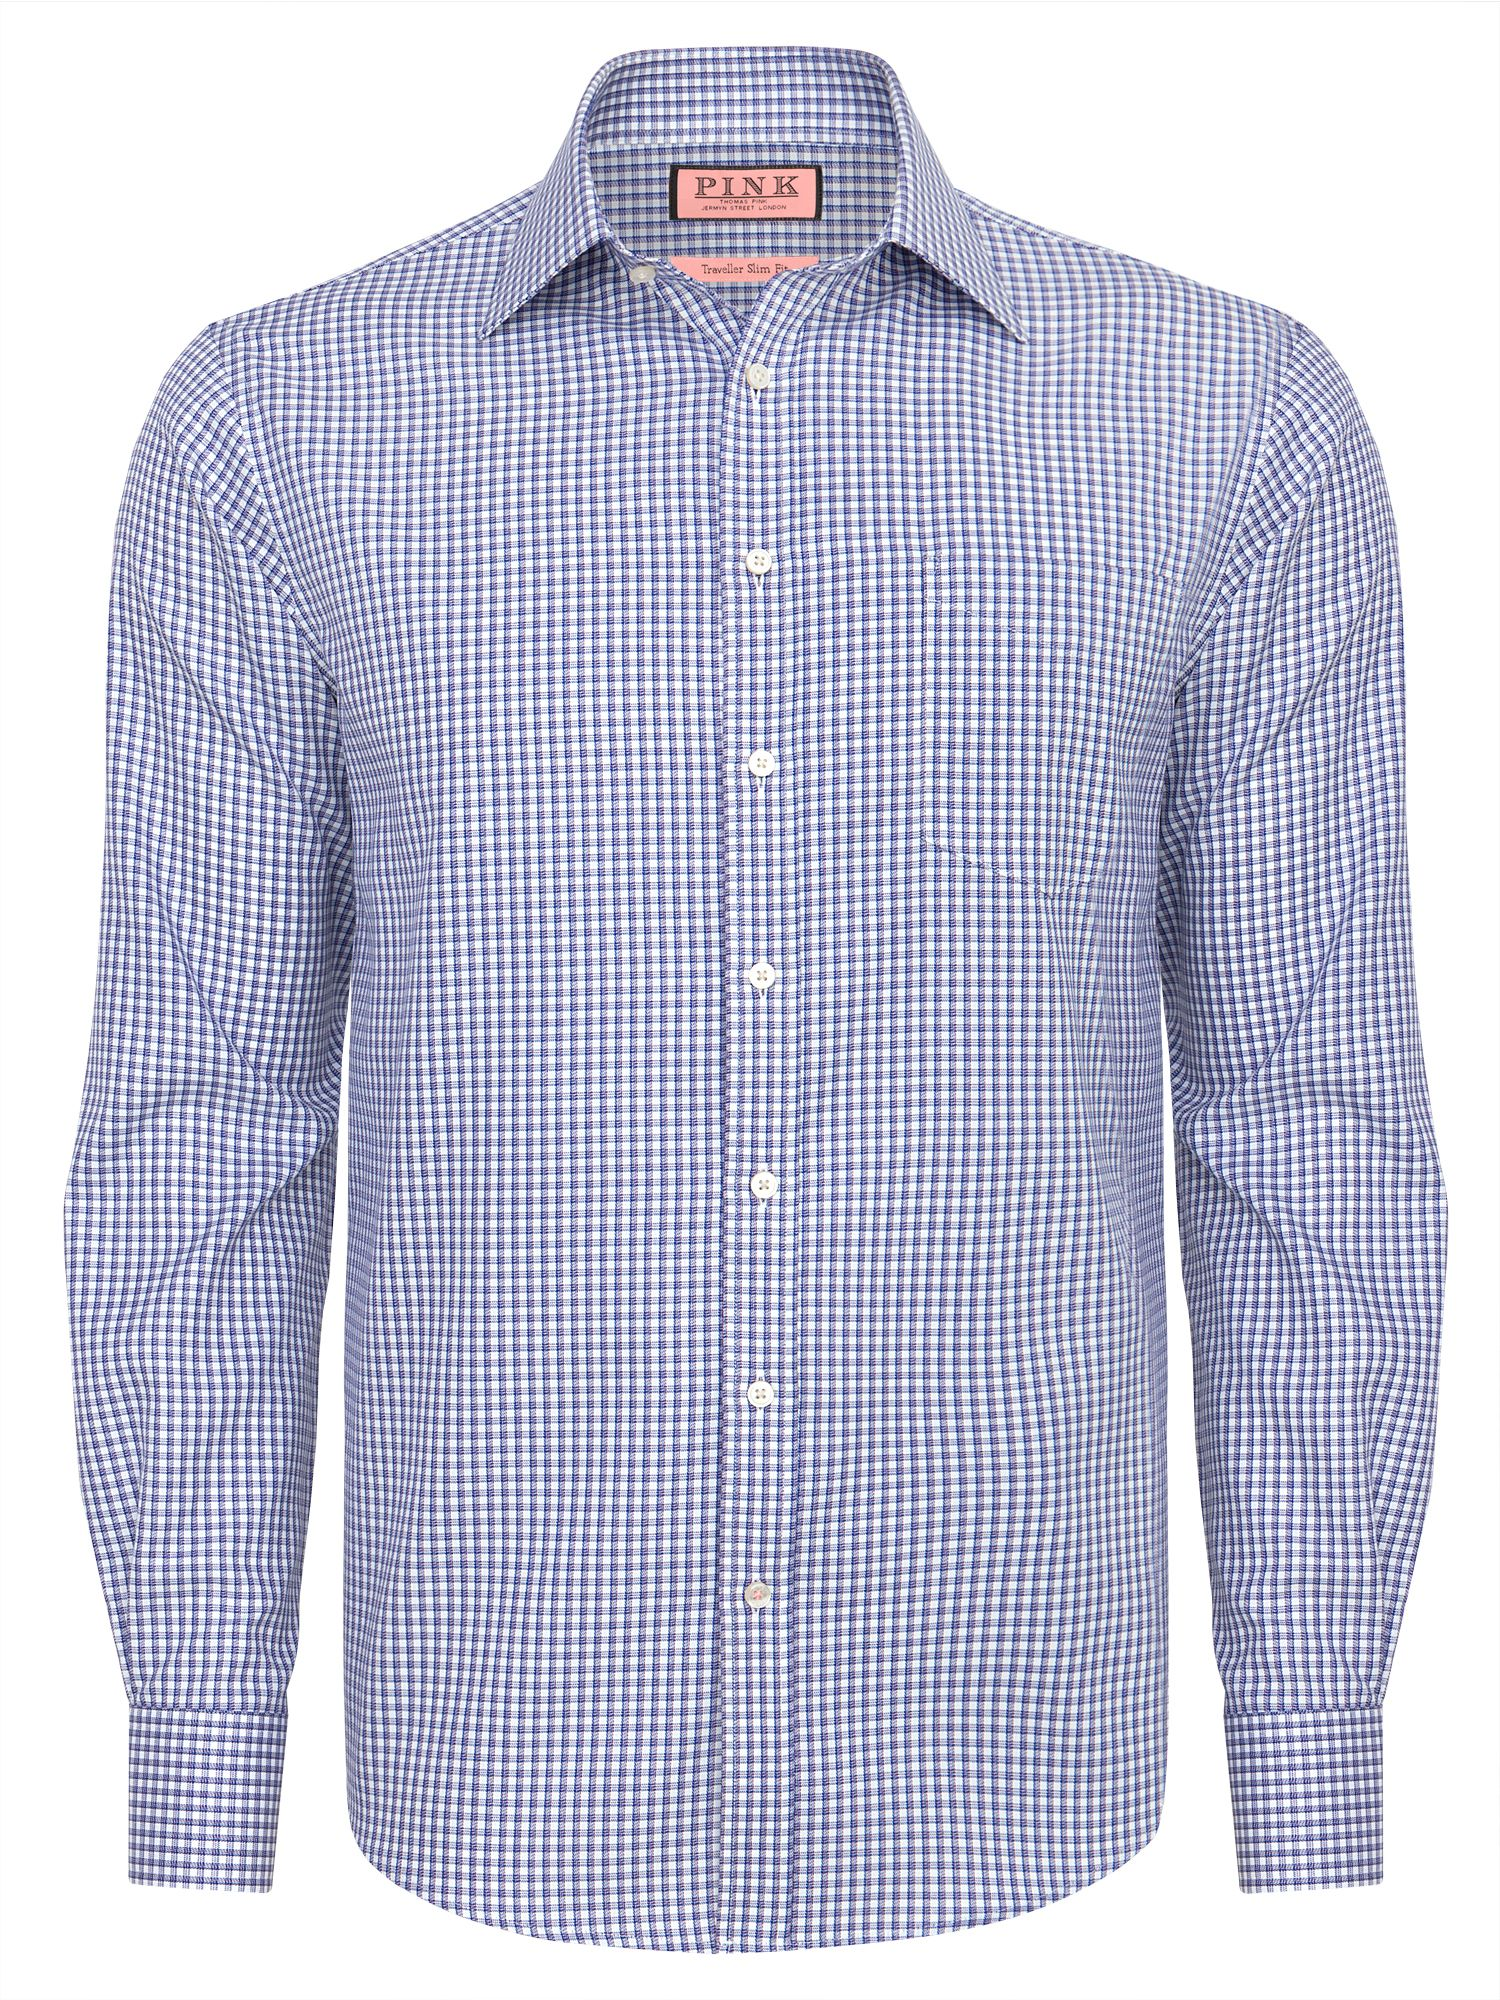 Cantwell stripe long sleeve shirt